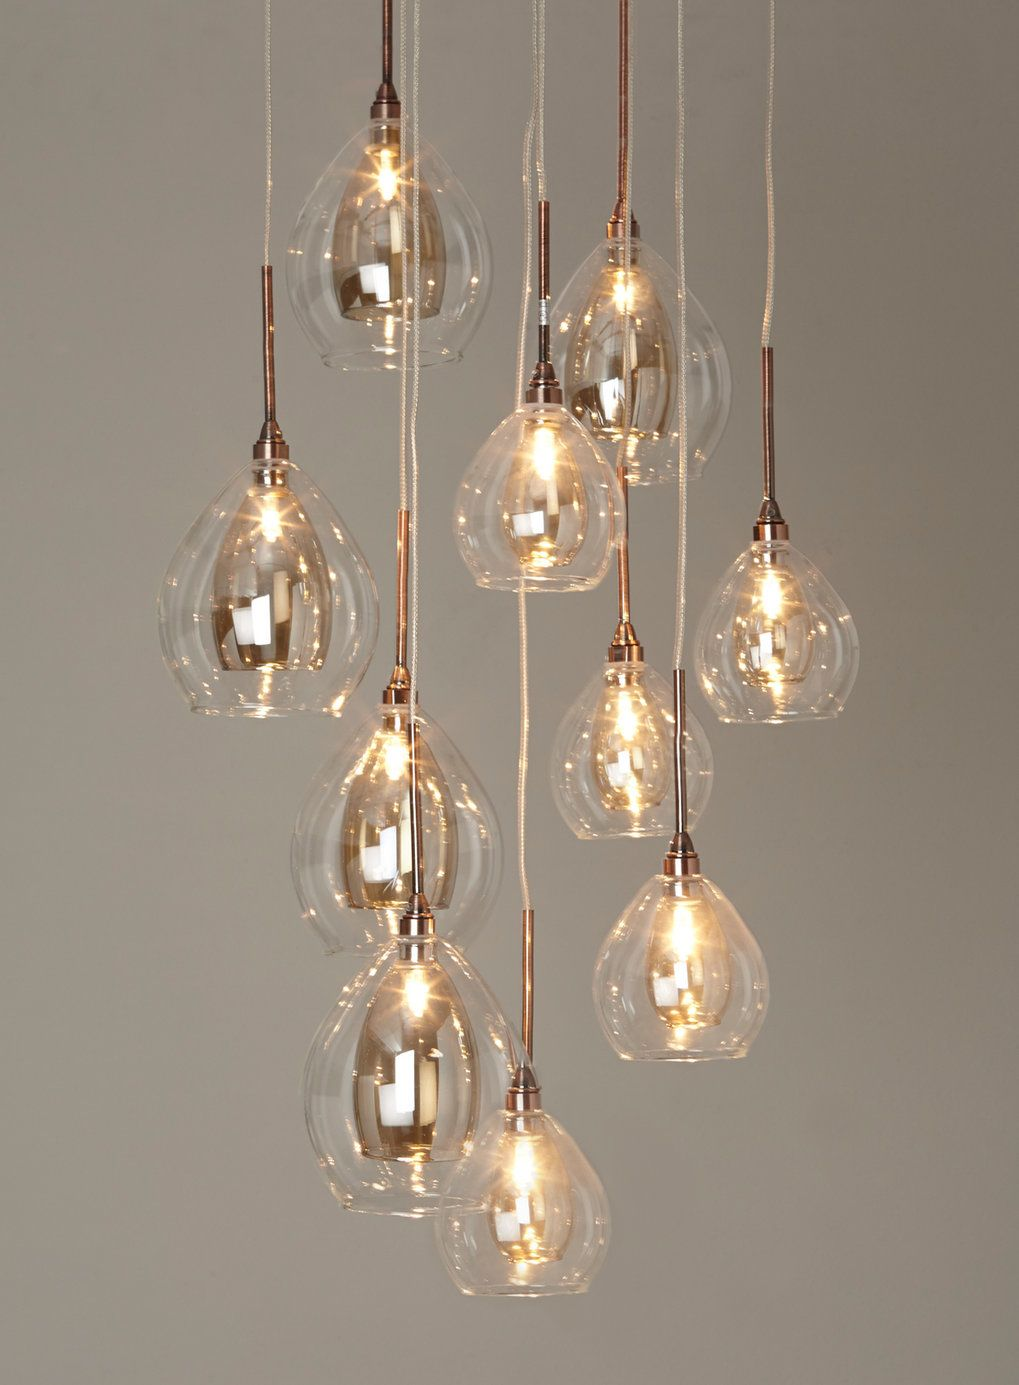 BHS Illuminate Atelier Carmella 10 Light Cluster Glass And Copper Ceiling Dining Room